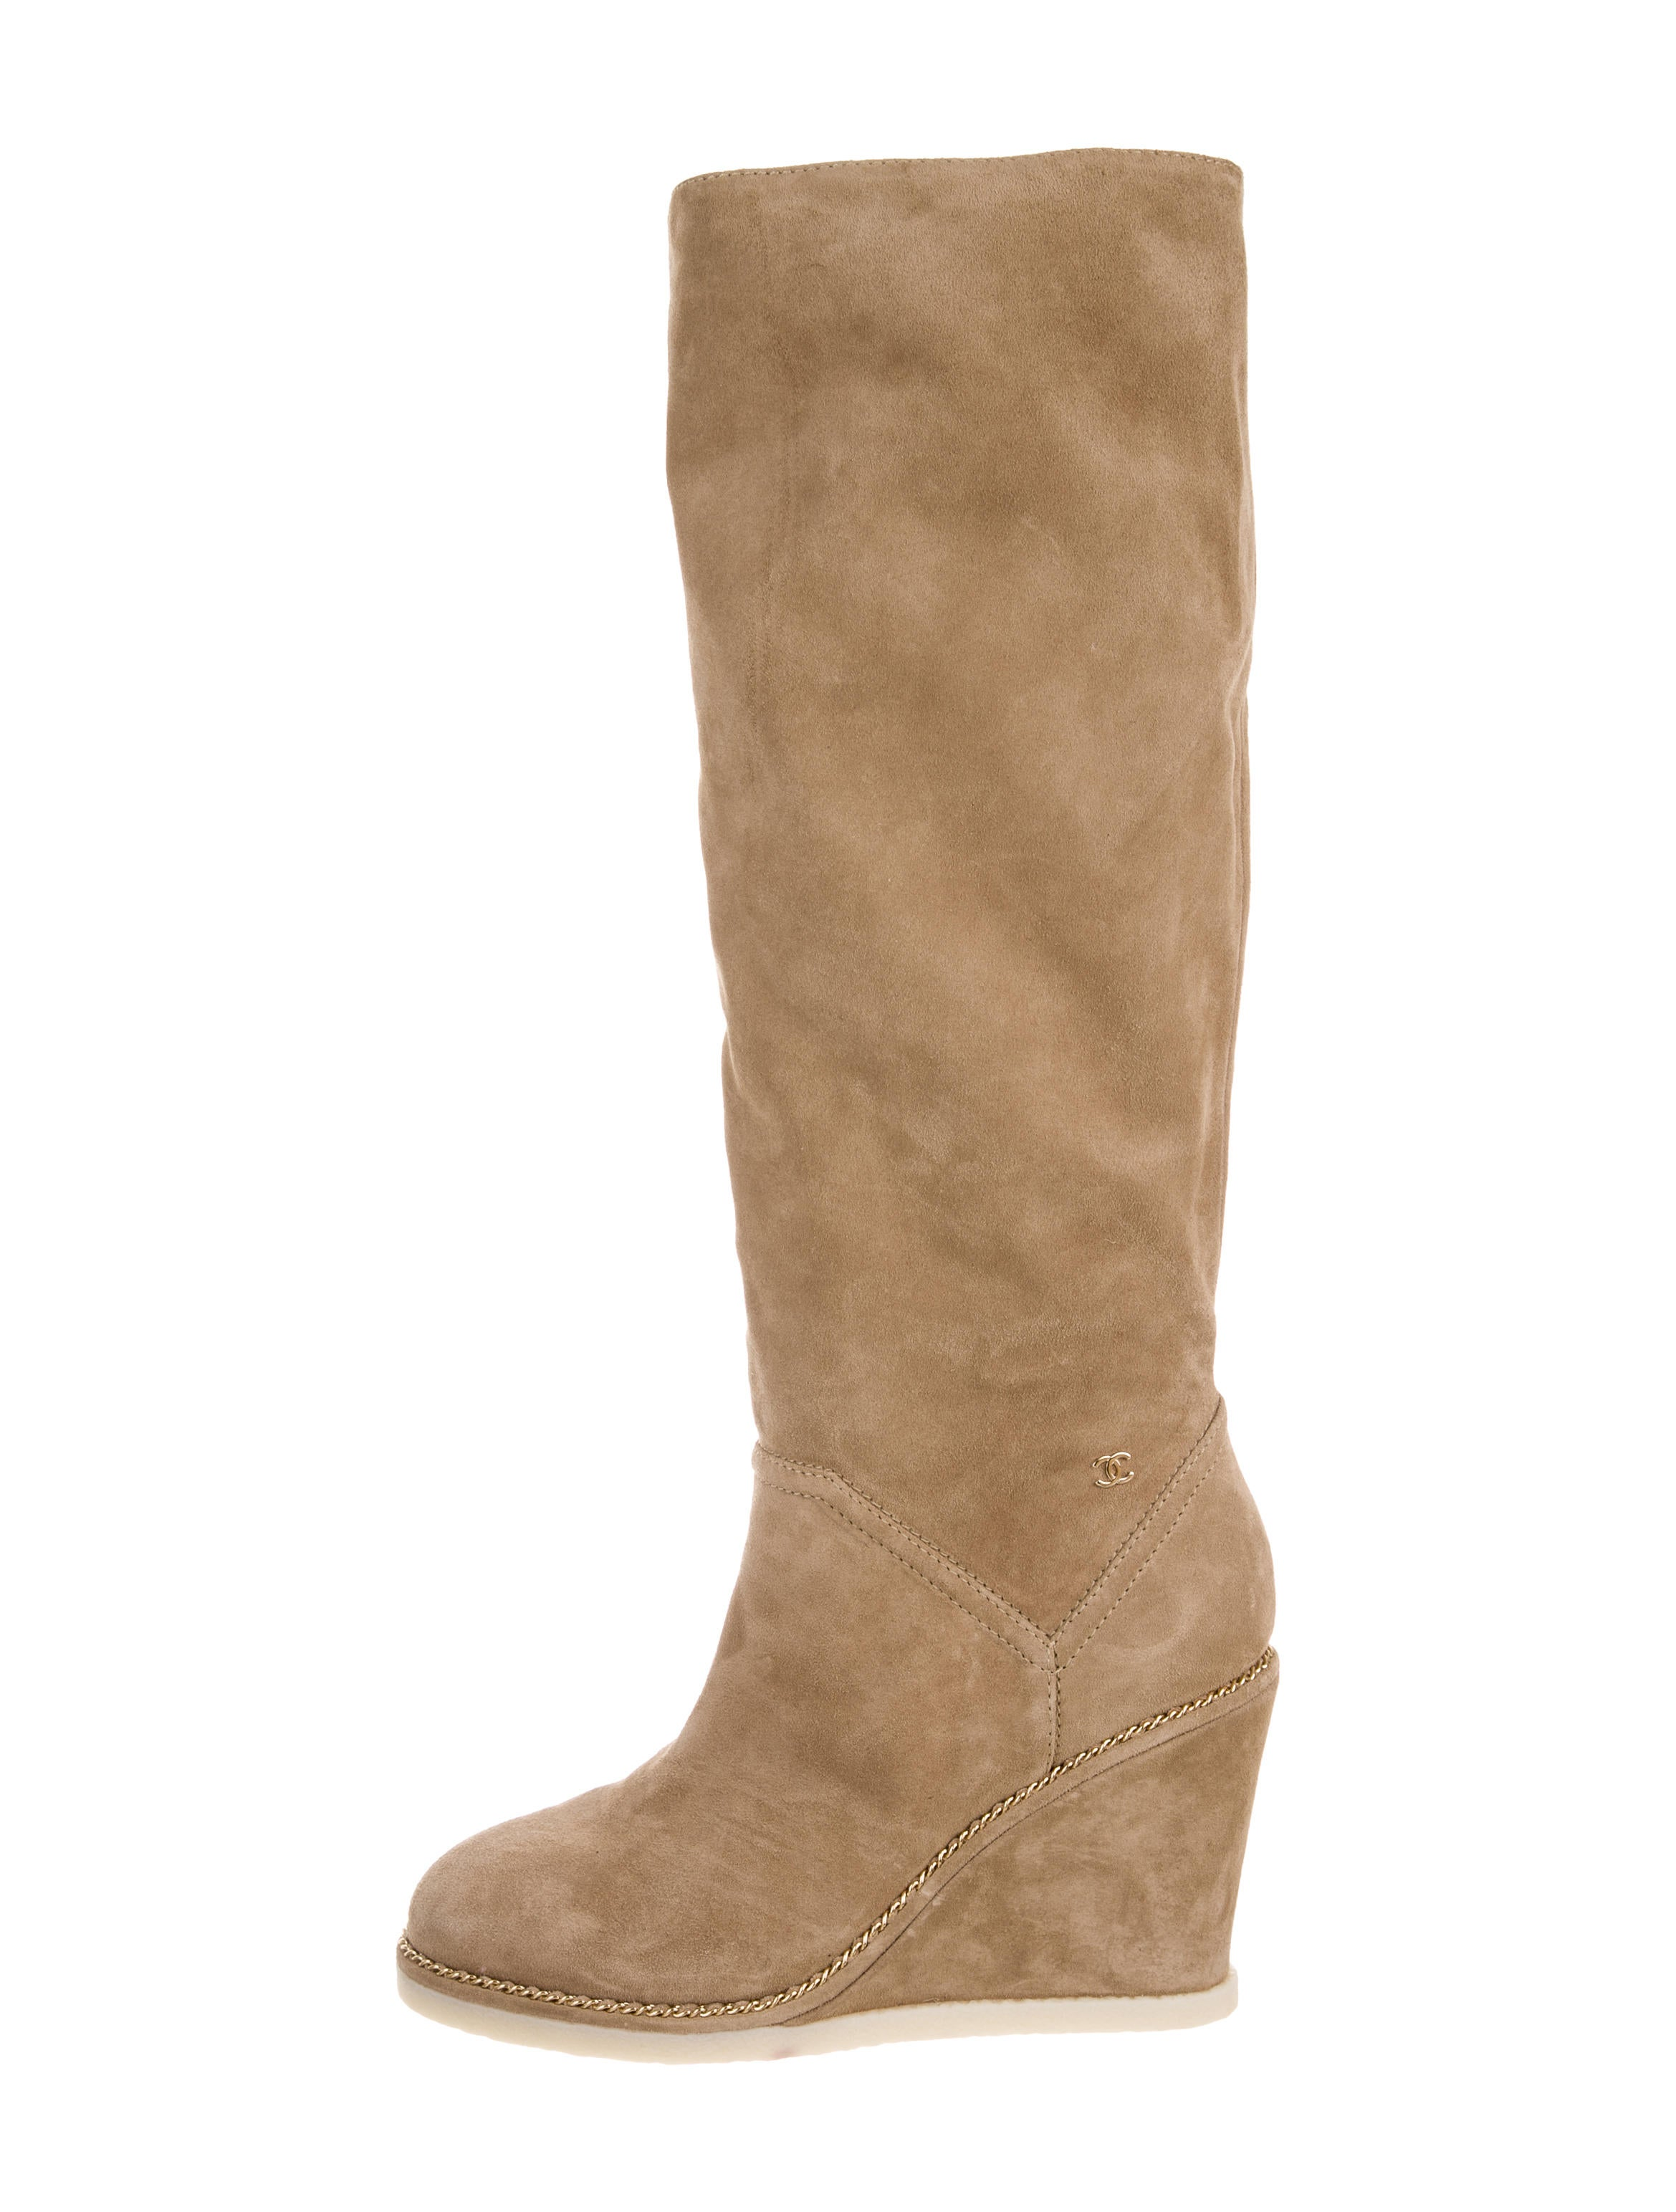 chanel knee high suede boots shoes cha166193 the